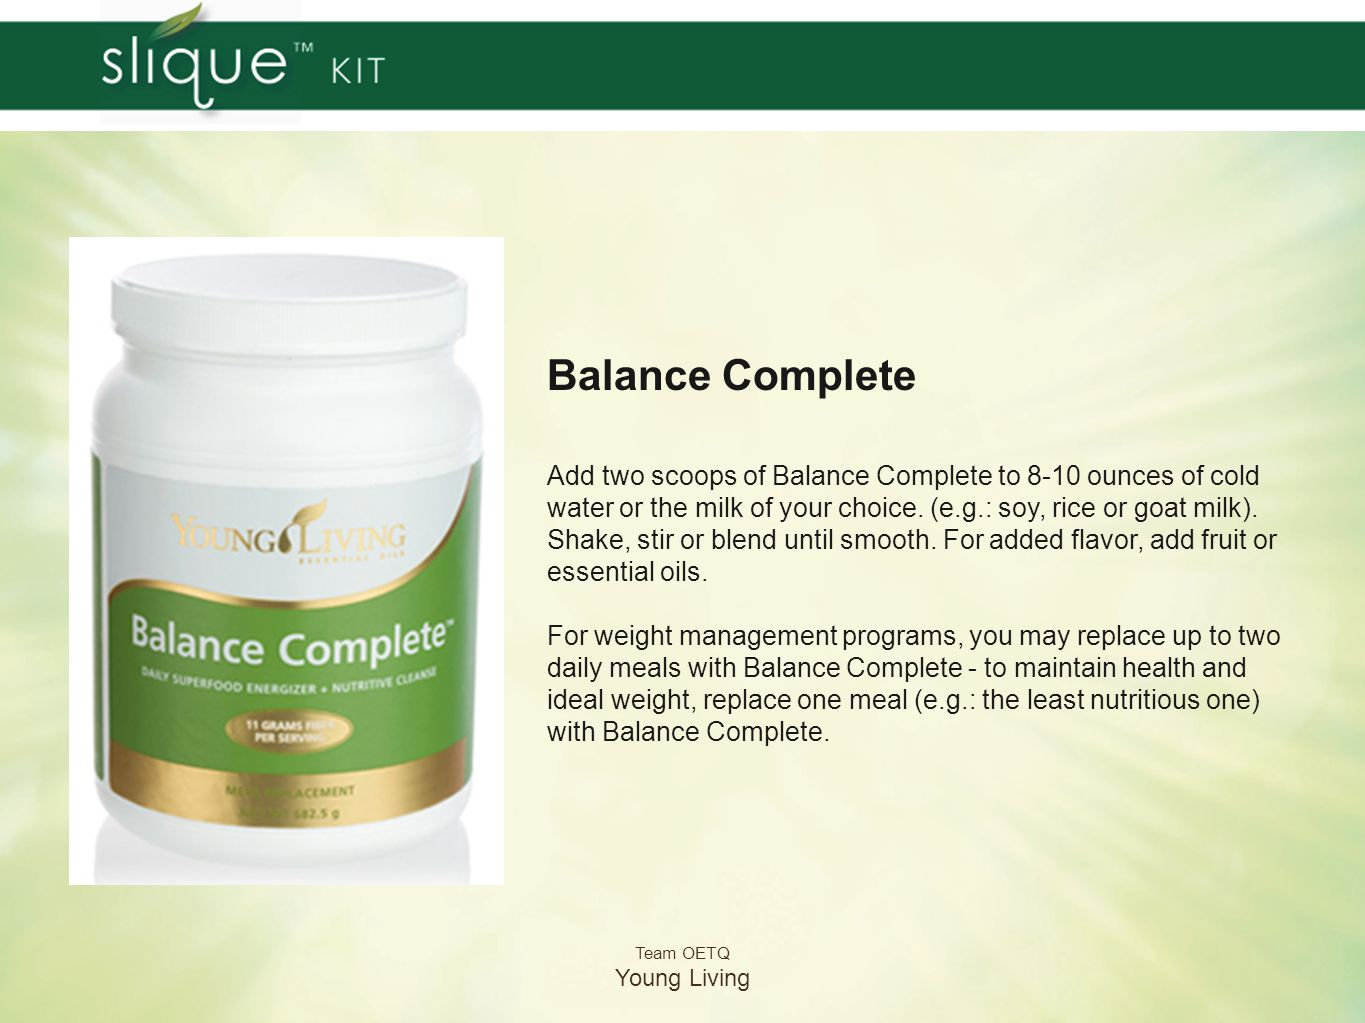 Team OETQ Young Living Balance Complete contains (1serving = 2 scoops = 1,76 oz.